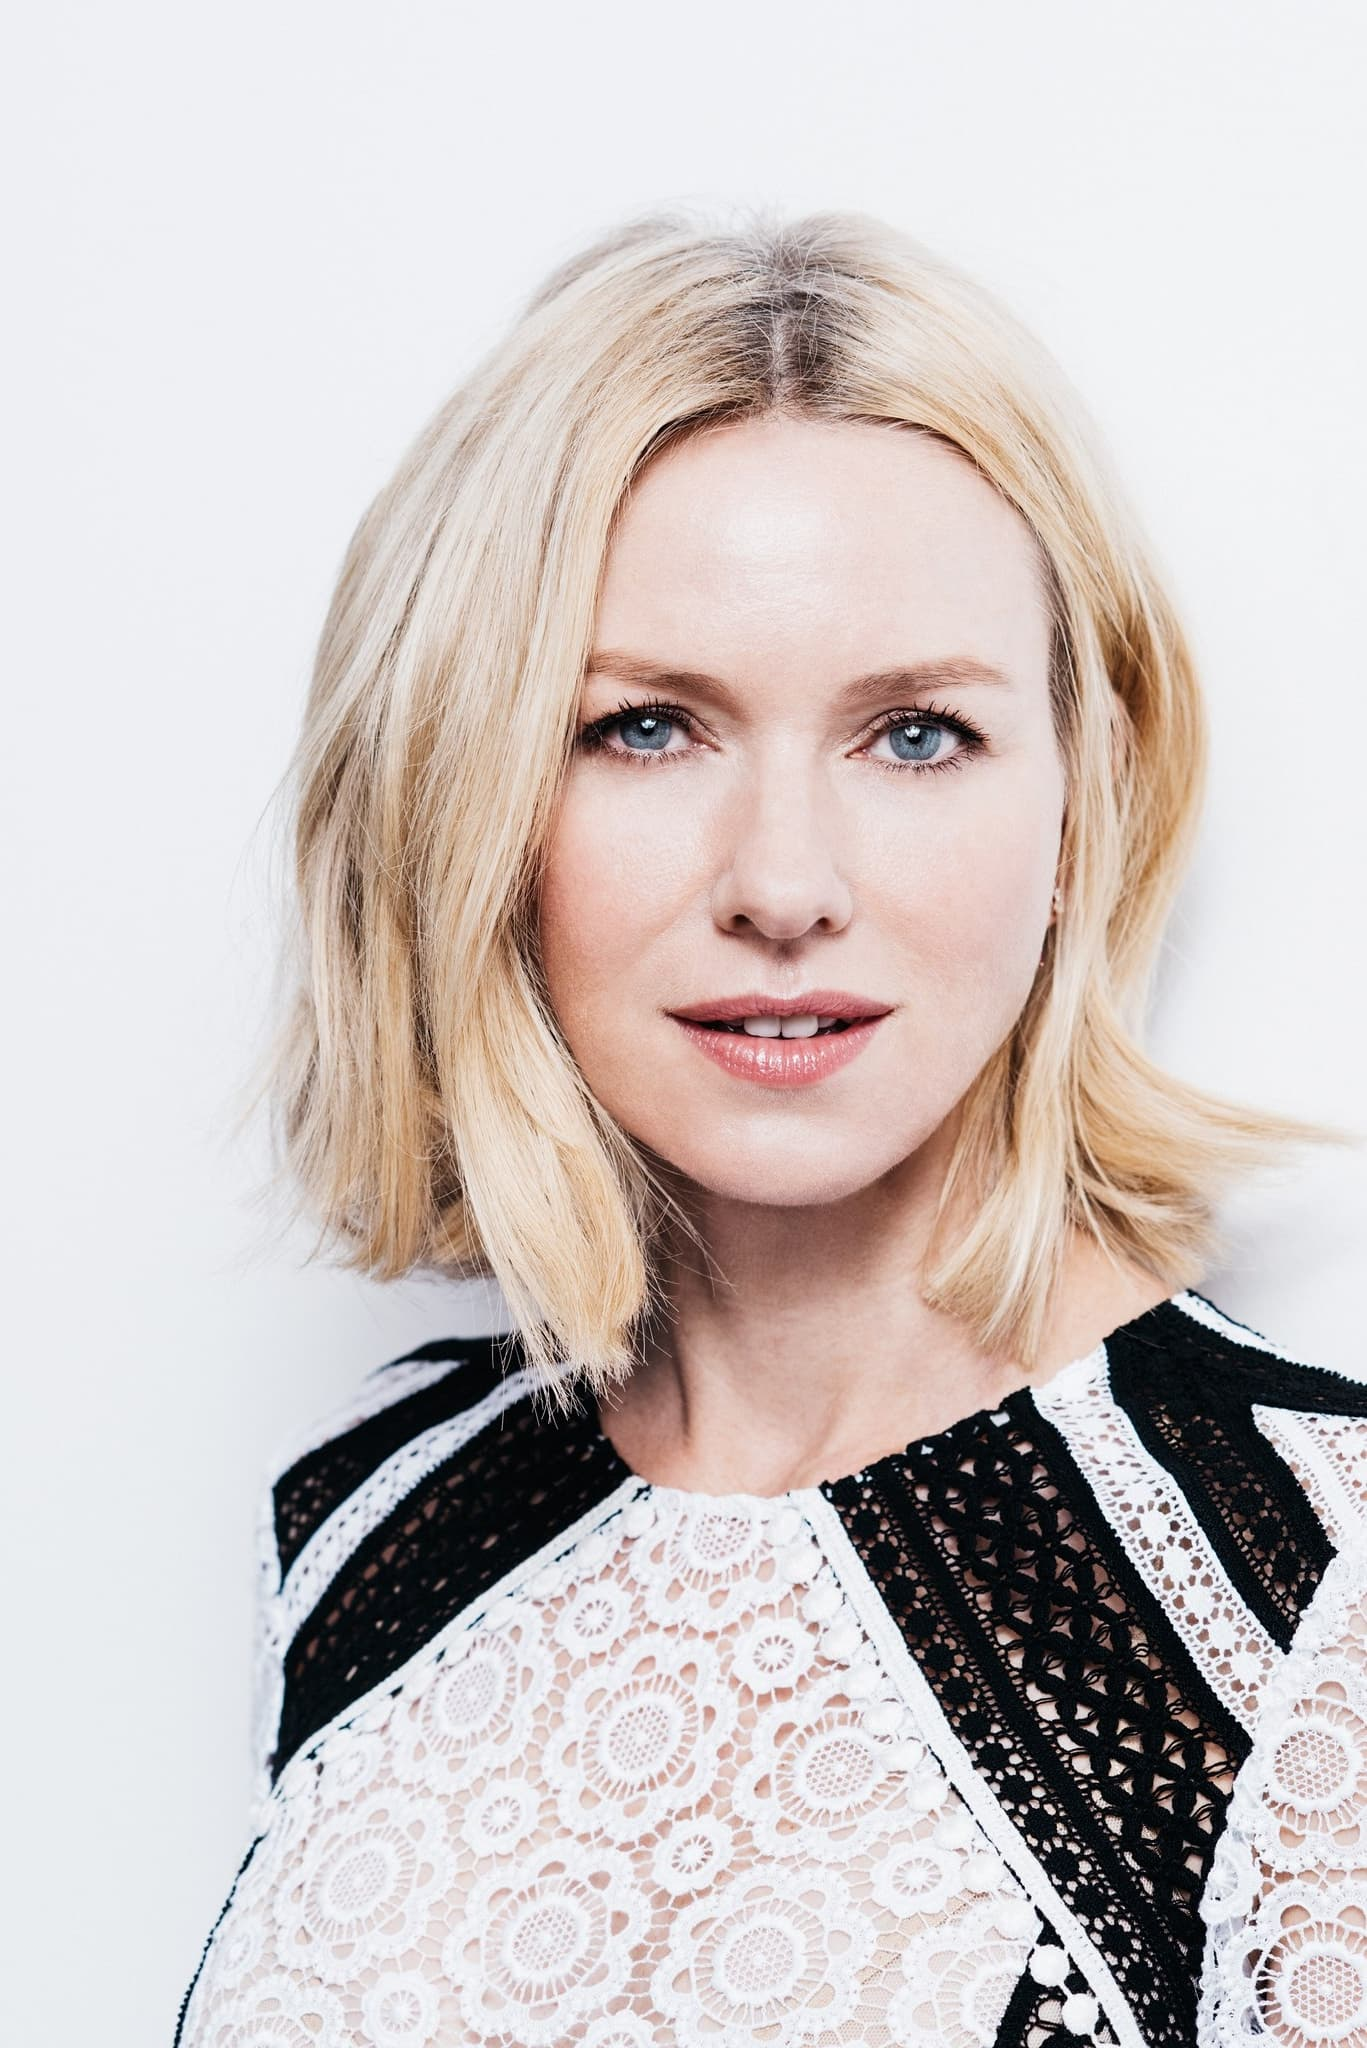 15 Naomi Watts Wallpapers High Quality Resolution Download